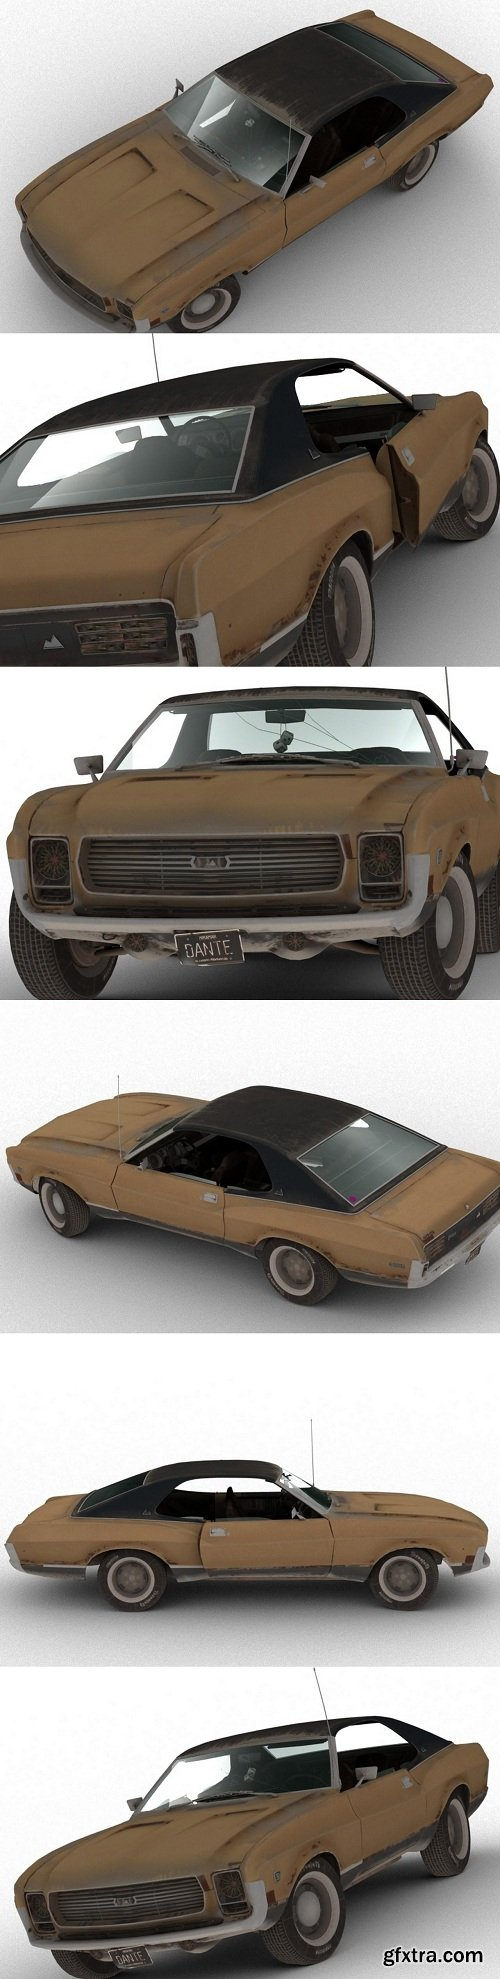 PUBG Rusty Old Car Low Poly 3D Model